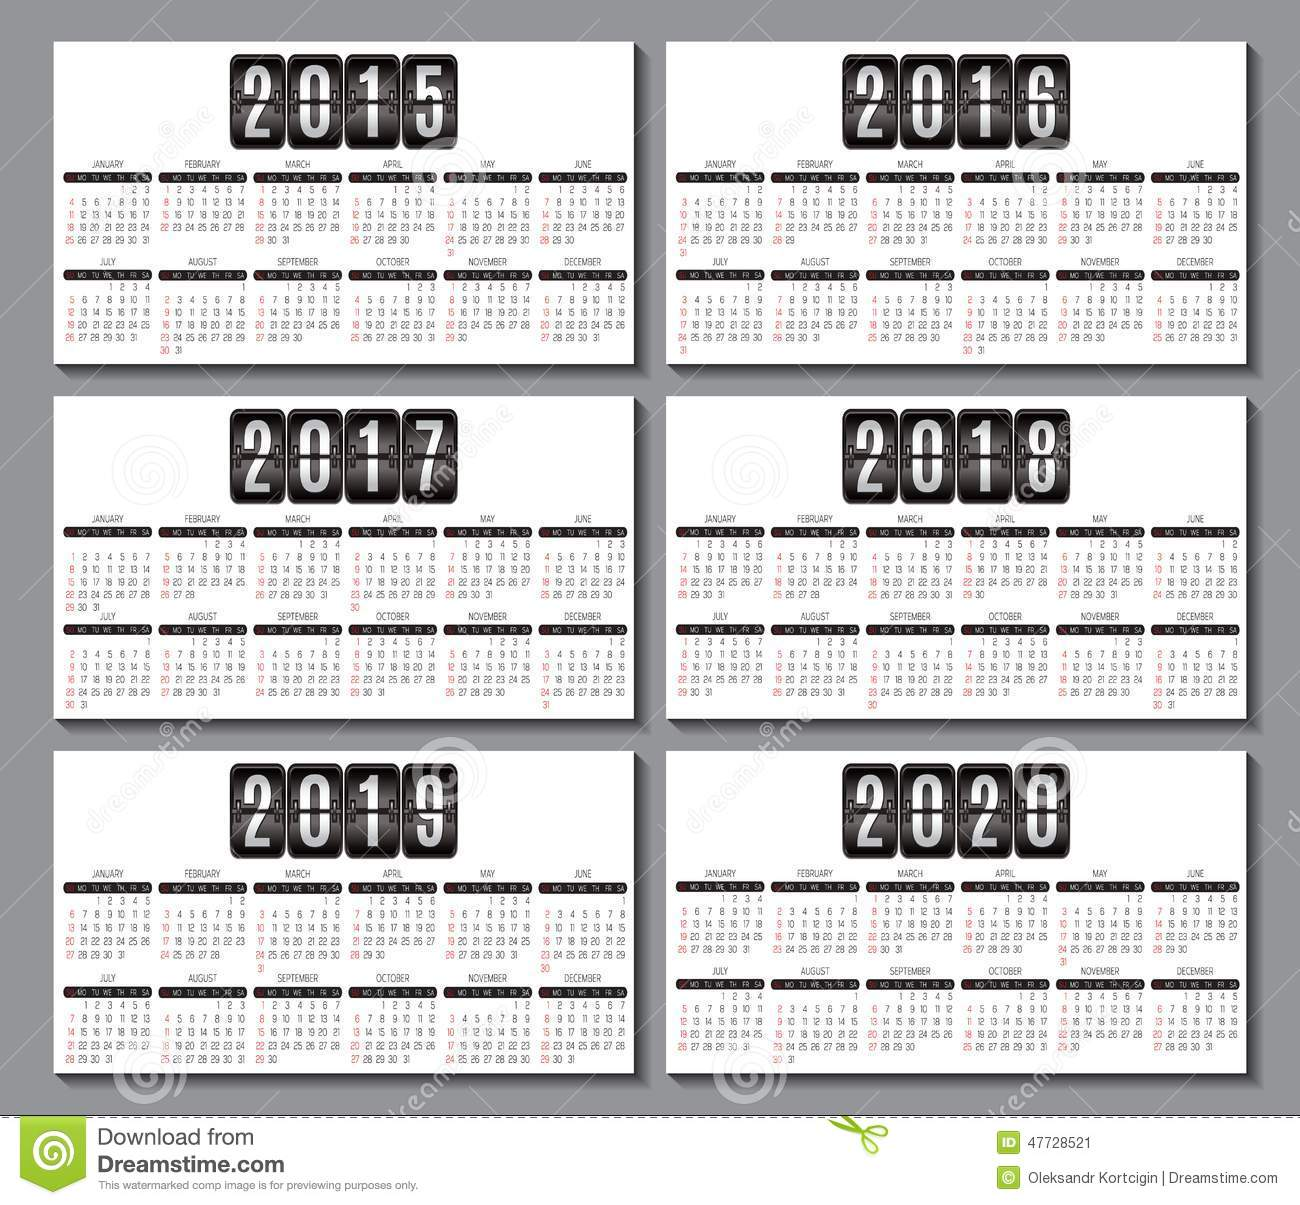 2016 2020 Calendar Calendar Grid 2015, 2016 2020 For Business Card Stock Vector